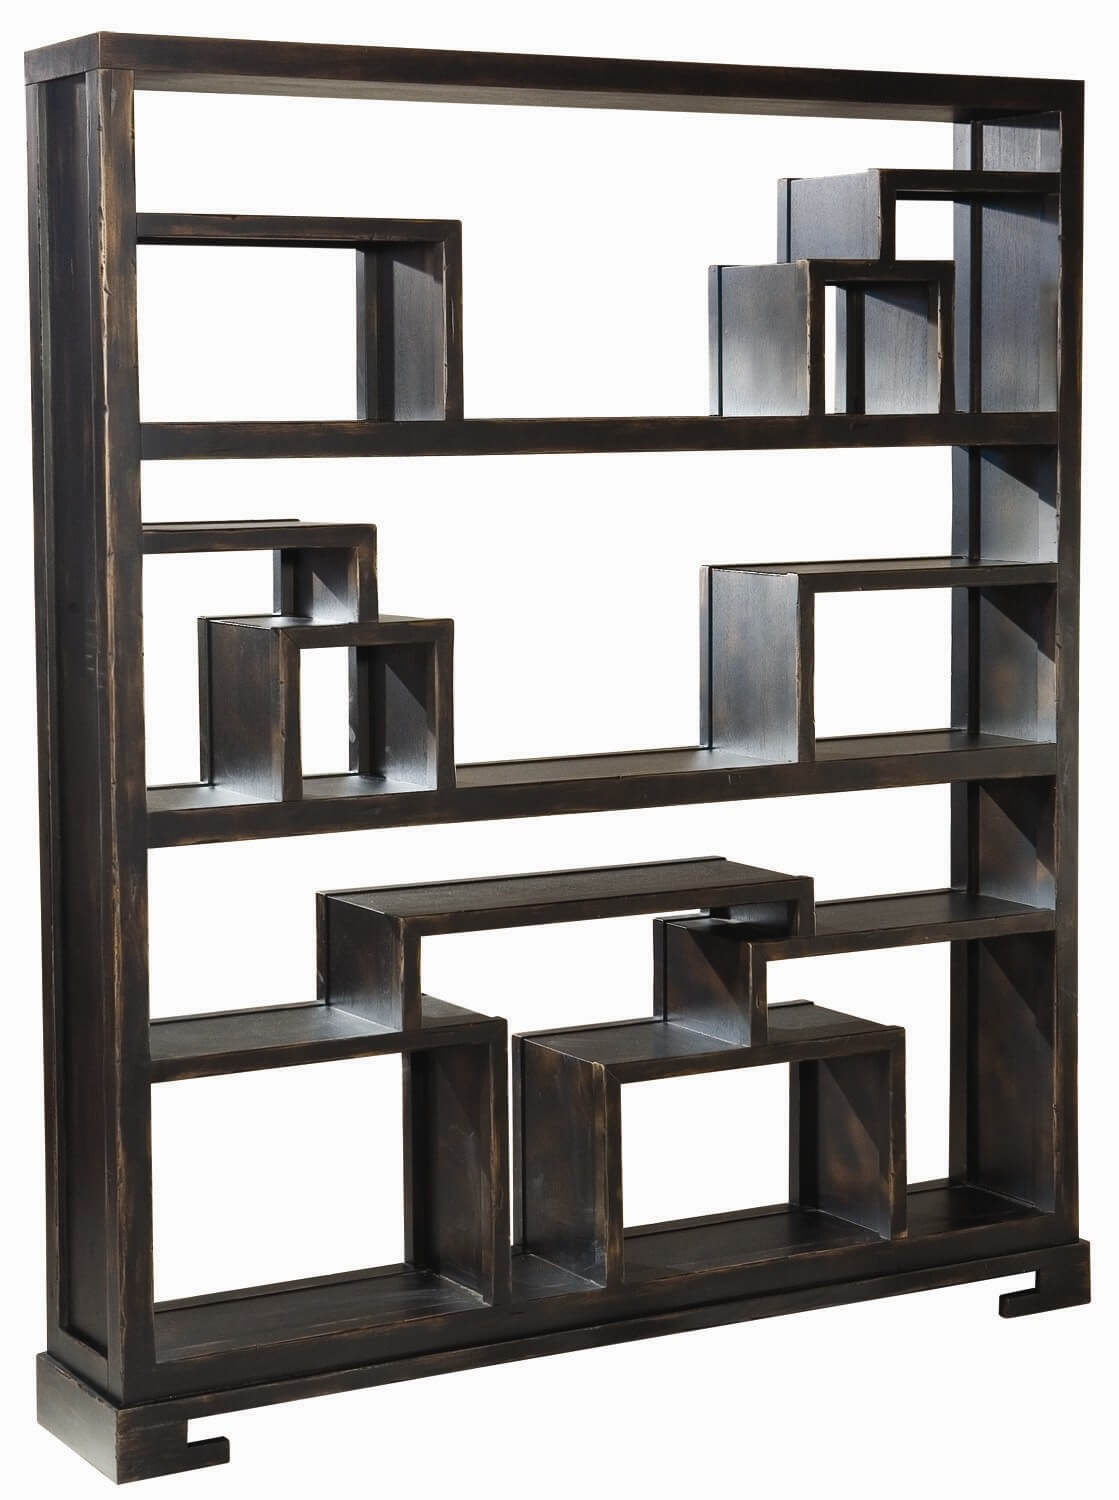 to bookcase diy backless decorate a build decorating tos make how and bookshelf